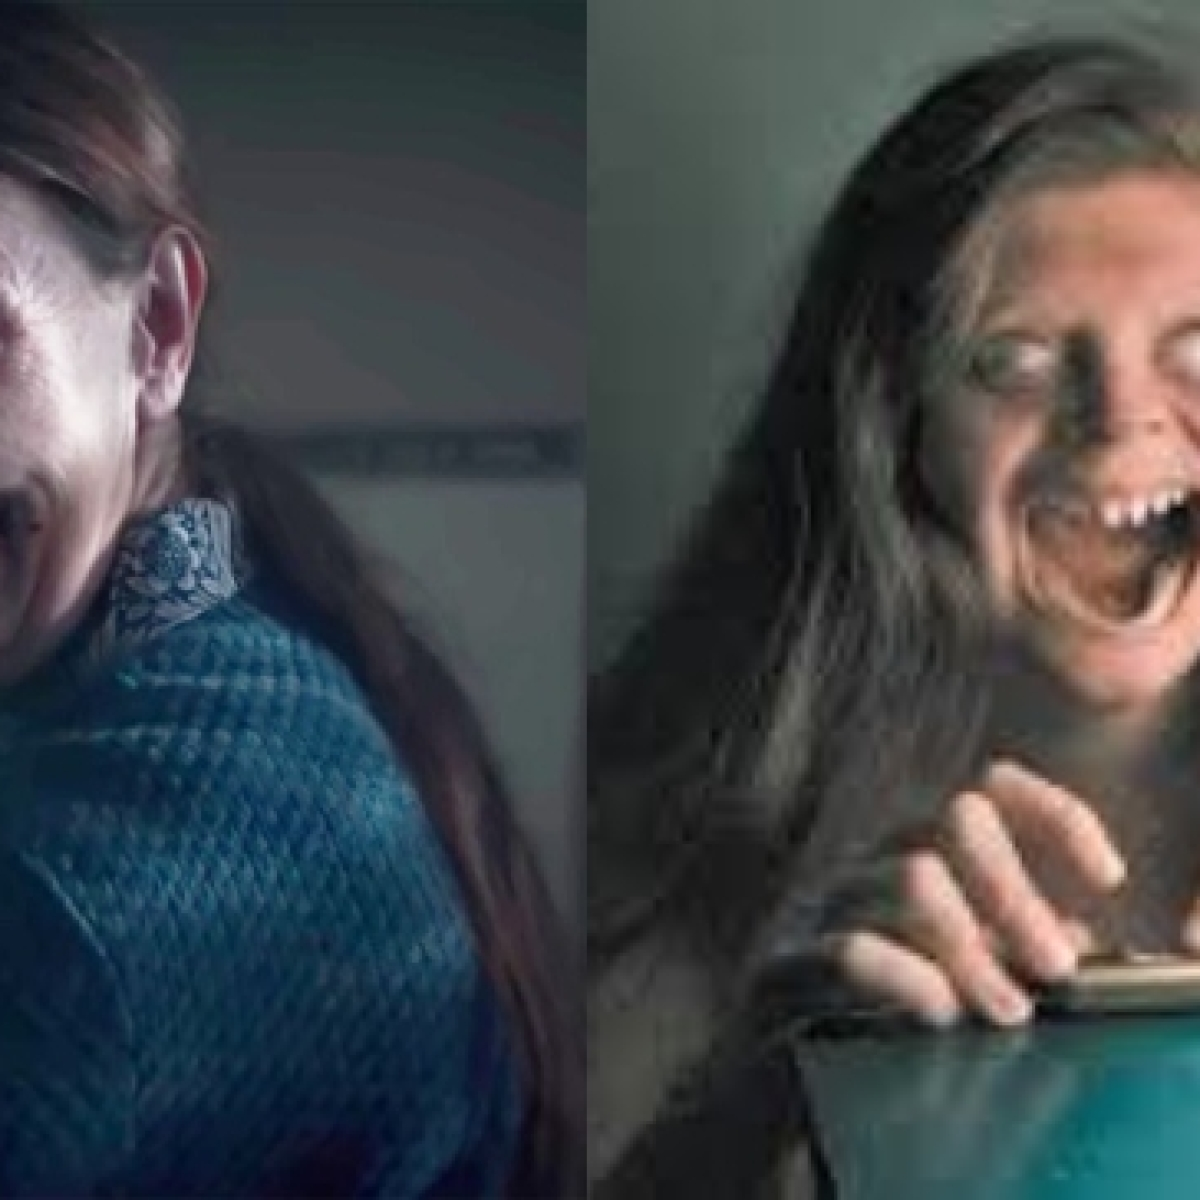 Halloween 2020: From 'Lights Out' to 'Marianne', binge-watch these terrifying horror shows, movies to get your fright fix